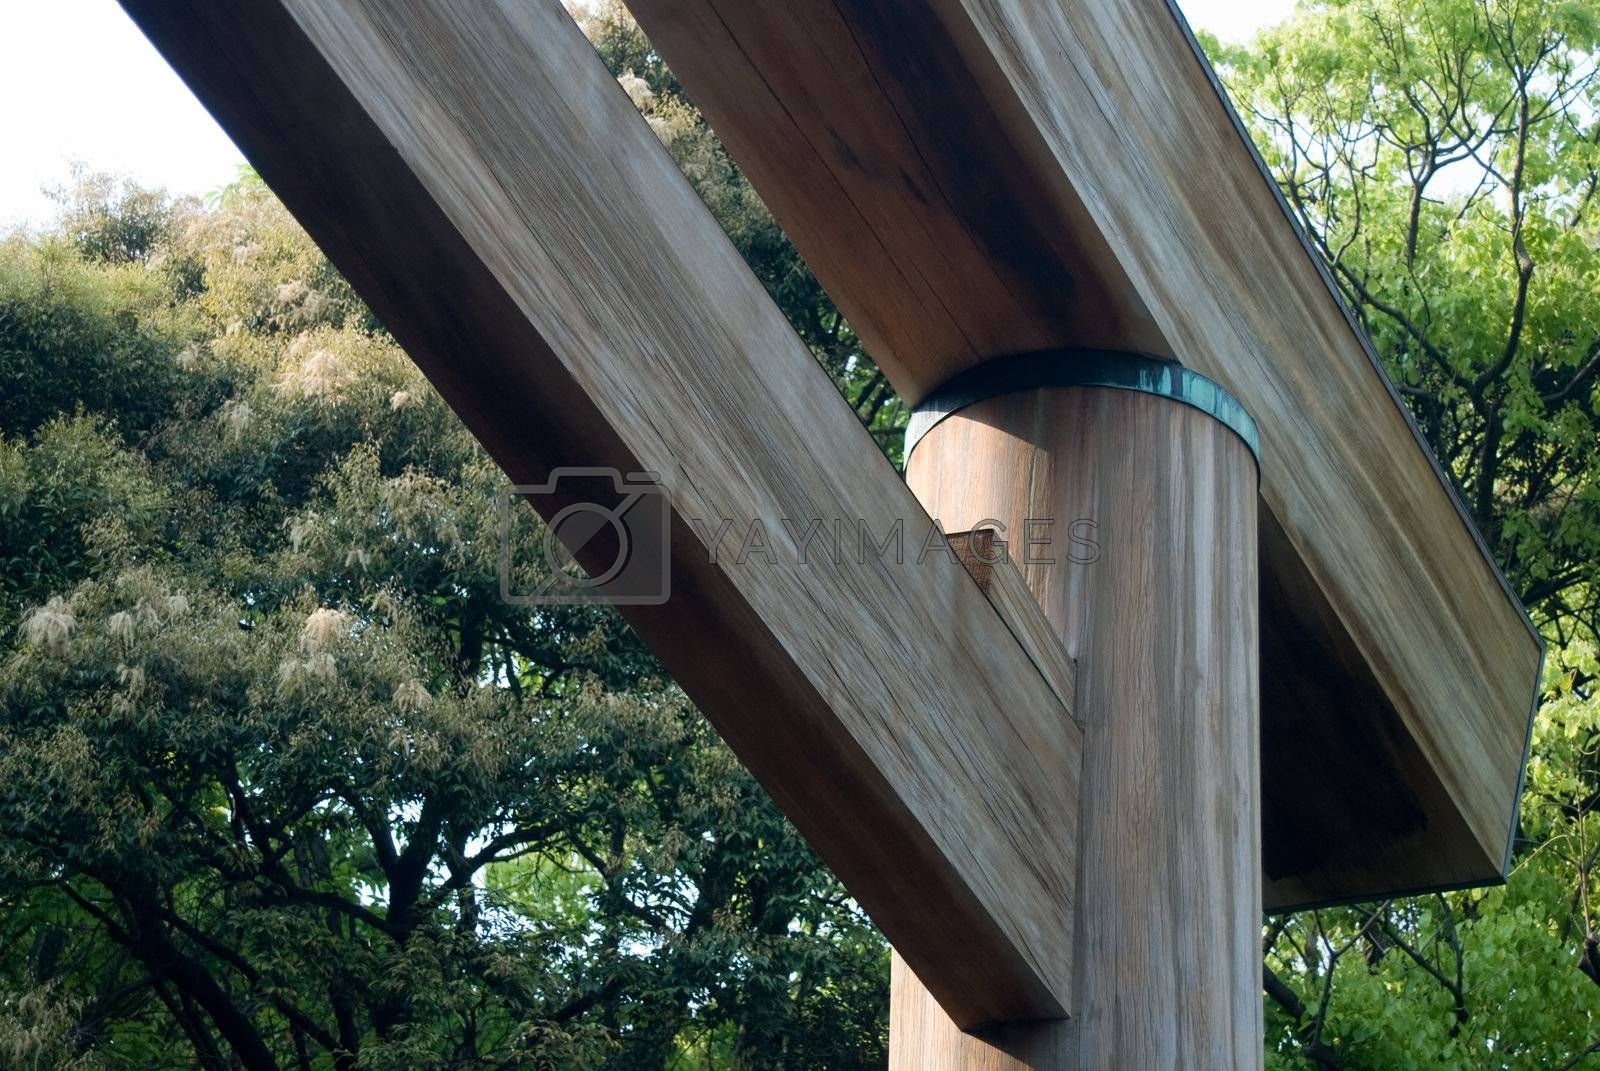 Japanese Torii Gate. Marks the entrance to a Shinto shrine. Angled corner. wood texture against greenery